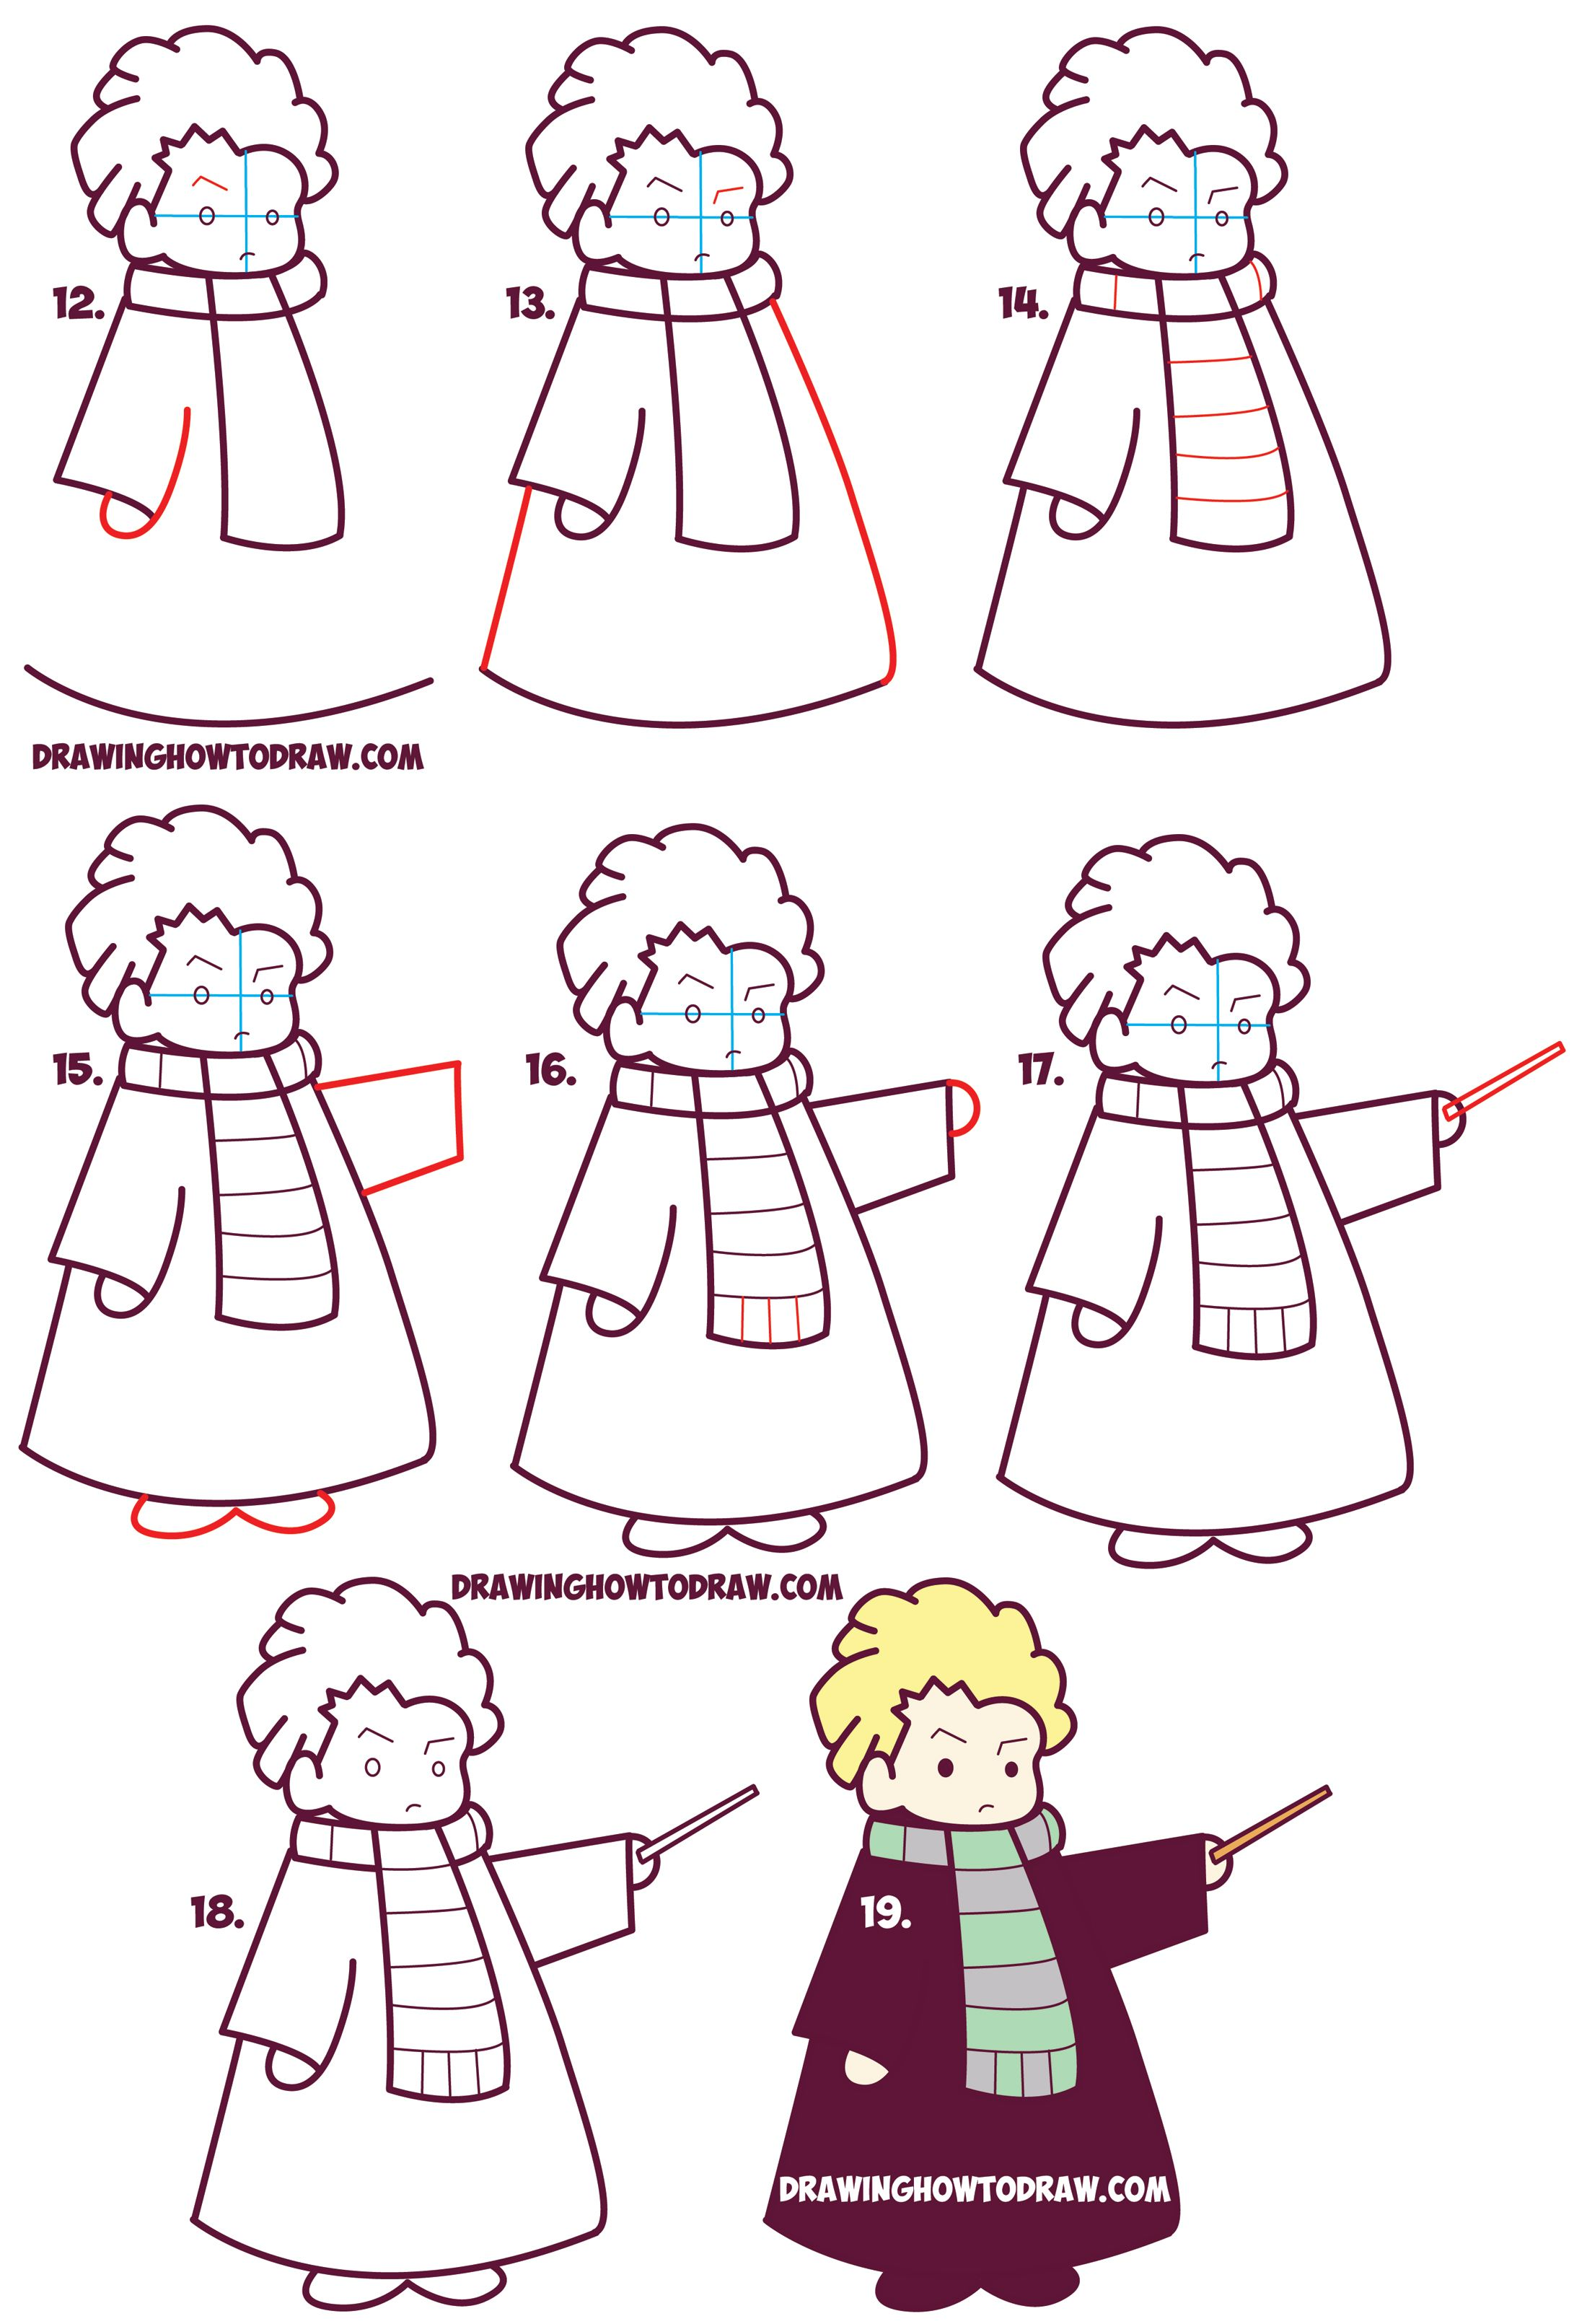 How To Draw Cute Draco Malfoy From Harry Potter Chibi Kawaii Easy Step By Step Drawing